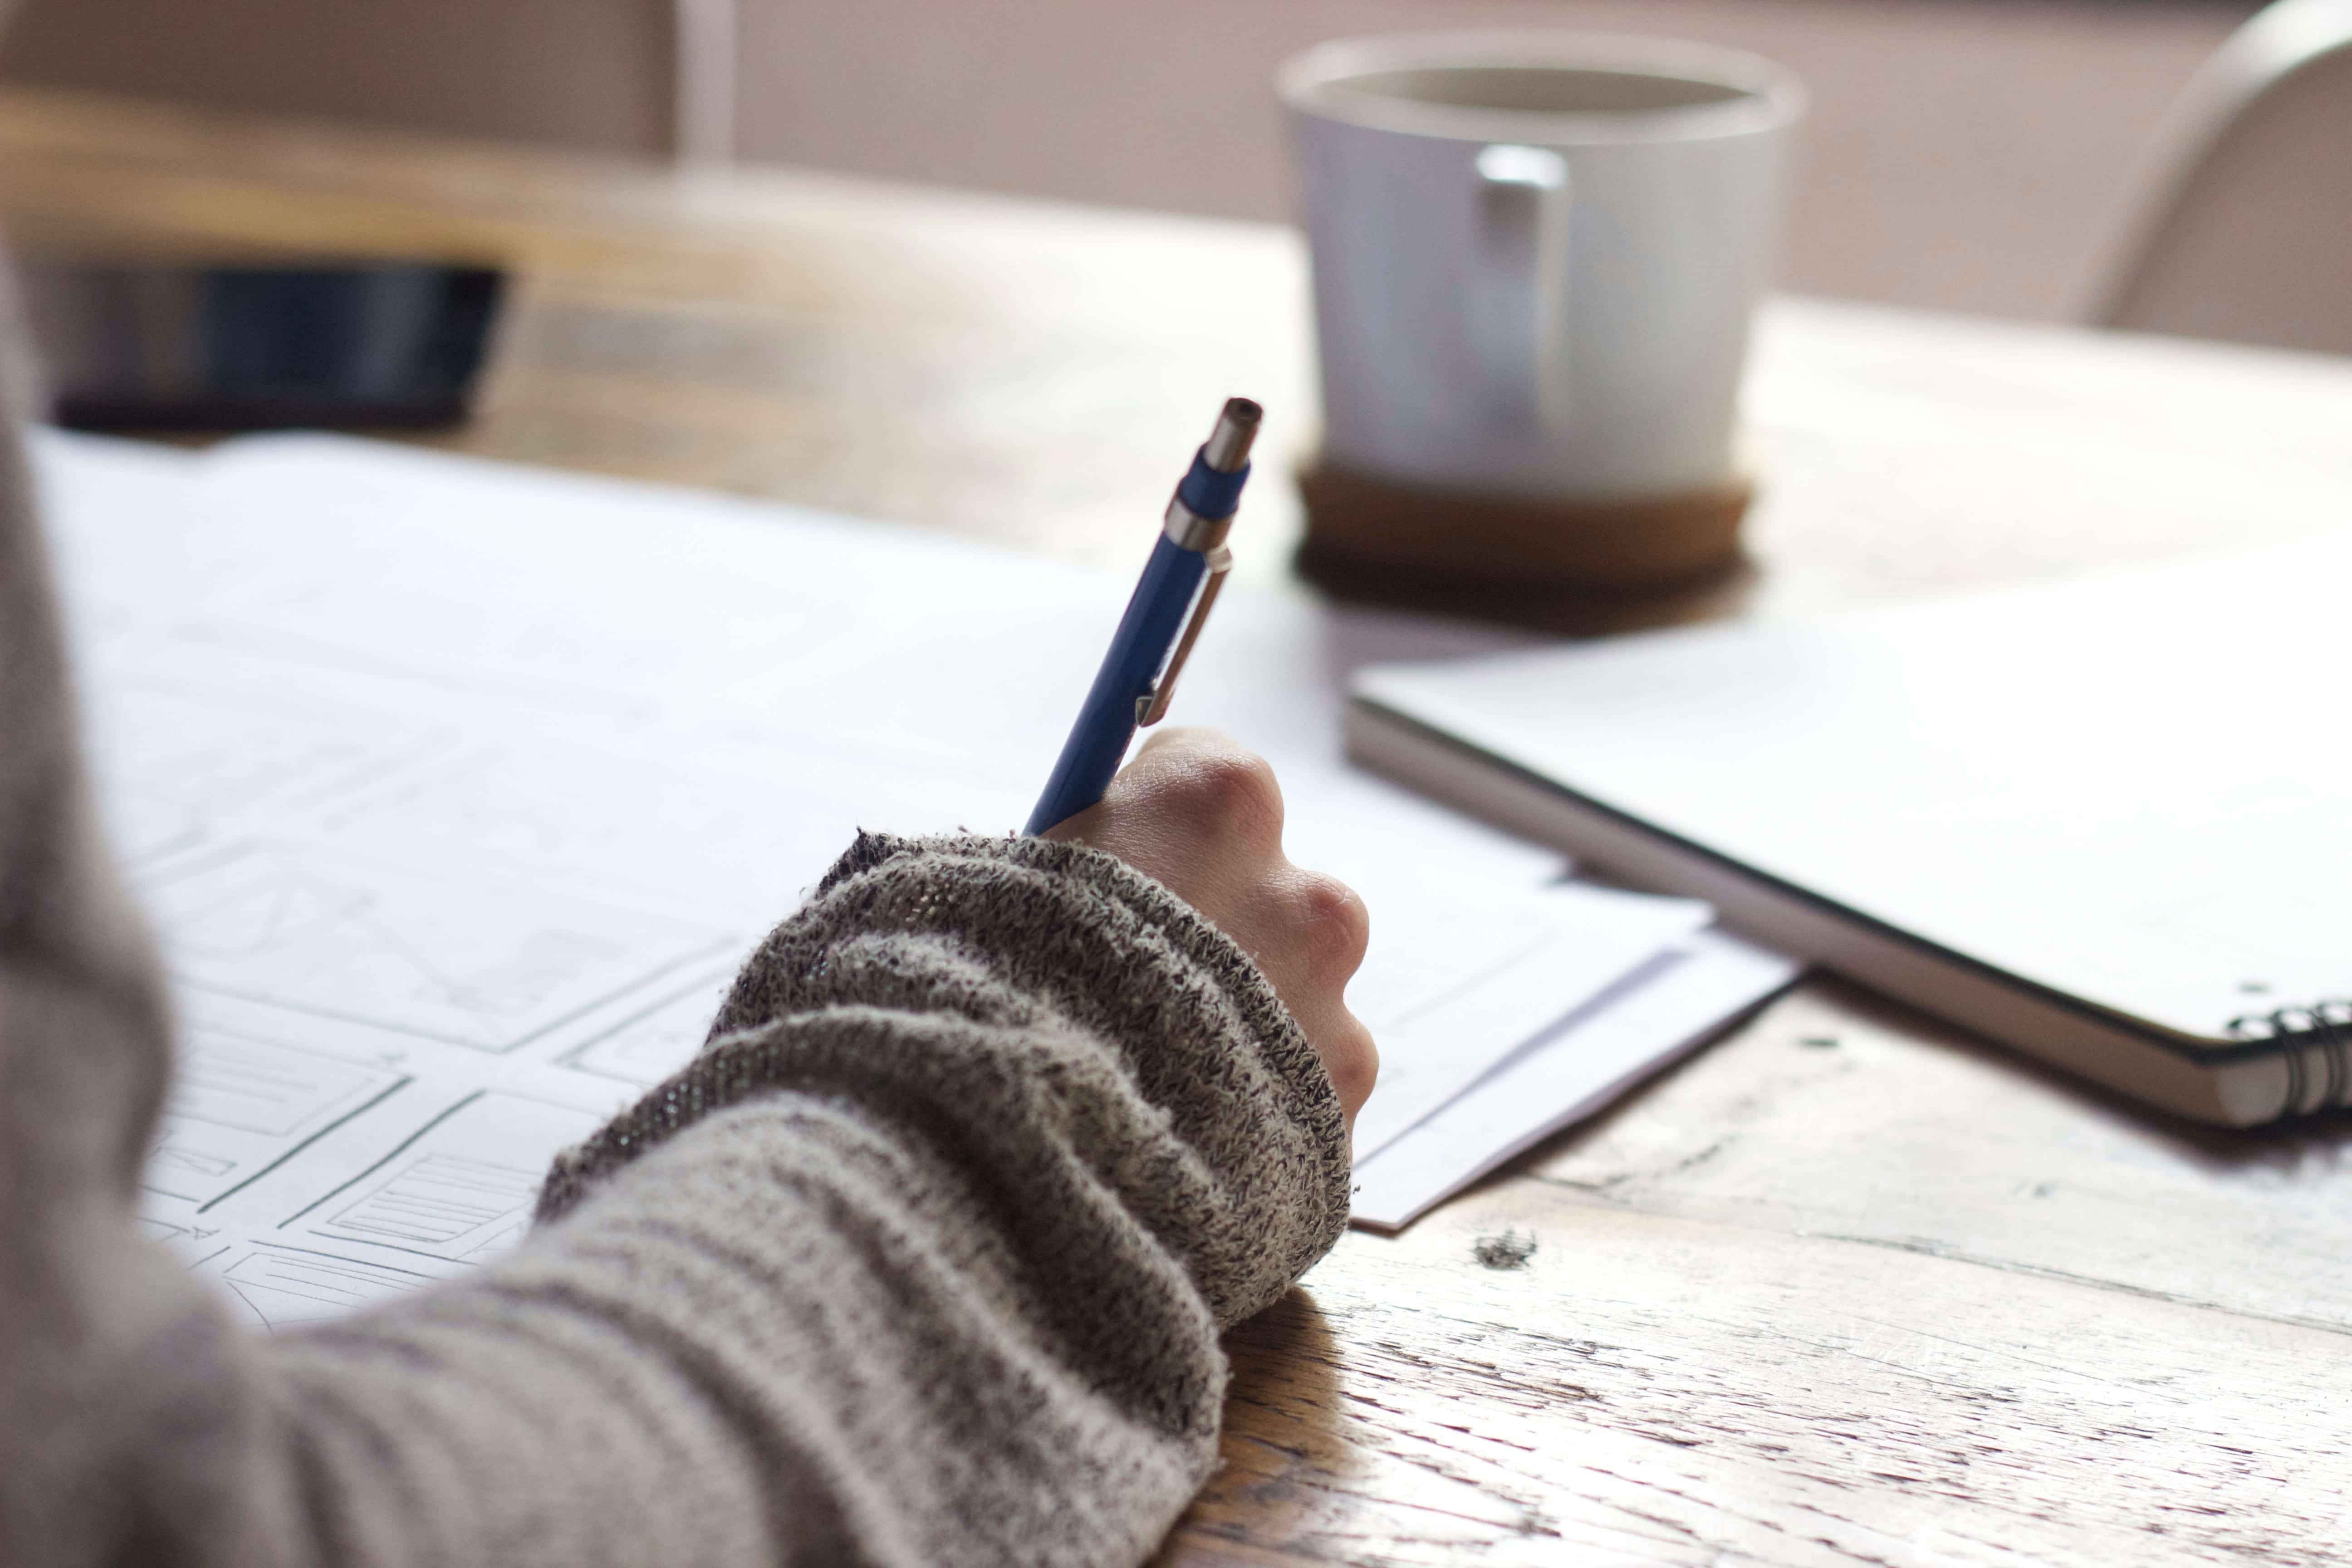 Person in grey sweater with notebook, pen, and papers, with mug in background; image by Green Chameleon, via Unsplash.com.